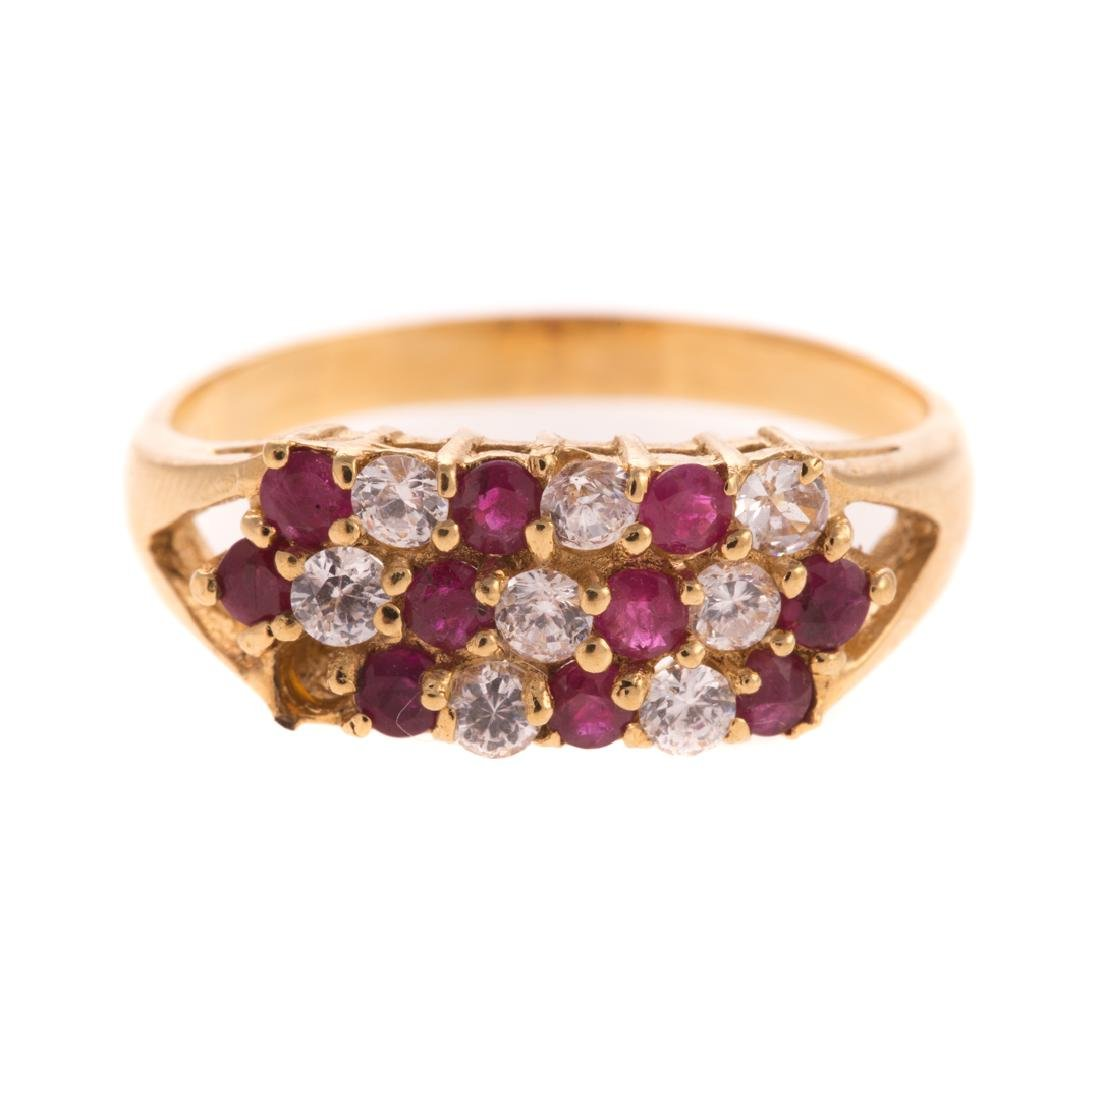 A Lady's Ruby and Diamond Ring in 14K Gold